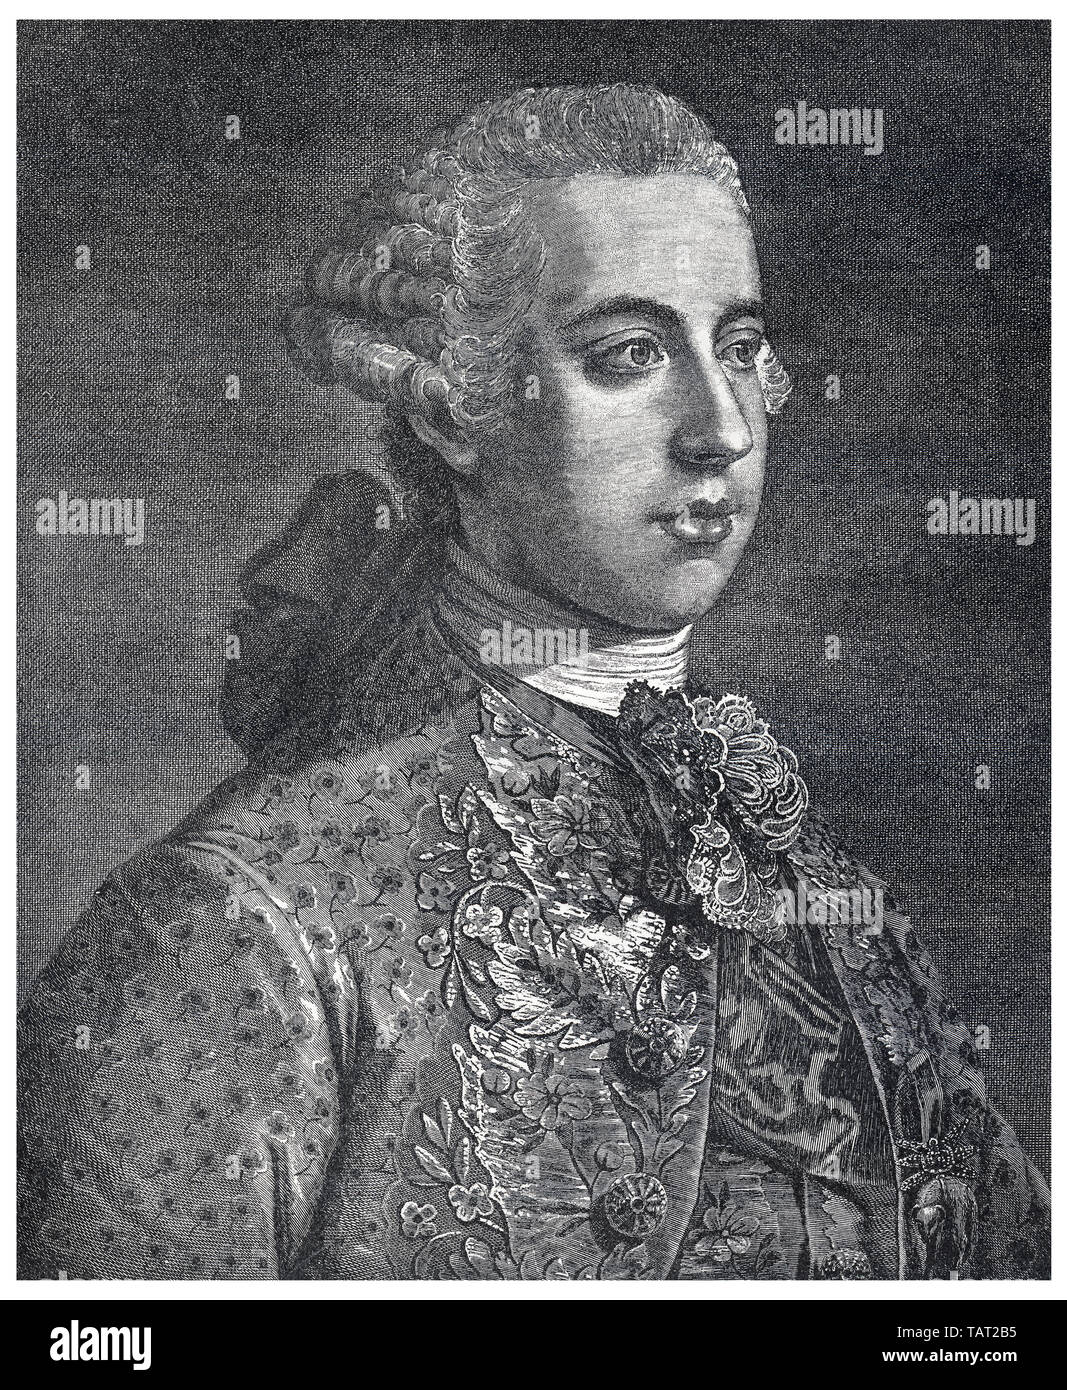 Joseph II, 1741-1790, Holy Roman Emperor from 1765 to 1790 - Stock Image